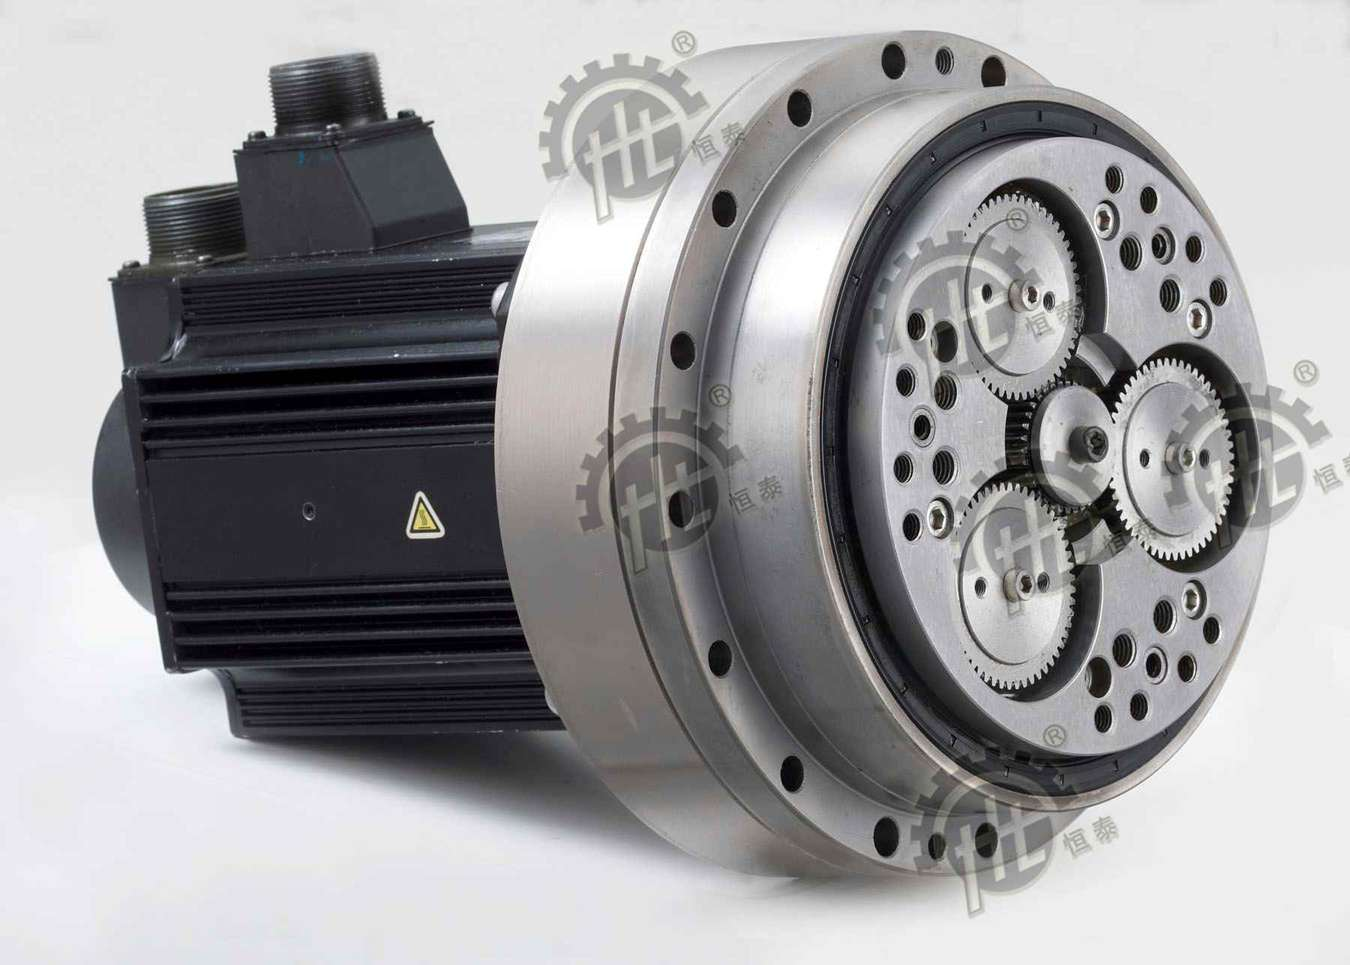 Cyclo Robot Precision Gear Reducer Cort Series for Welding Positioner